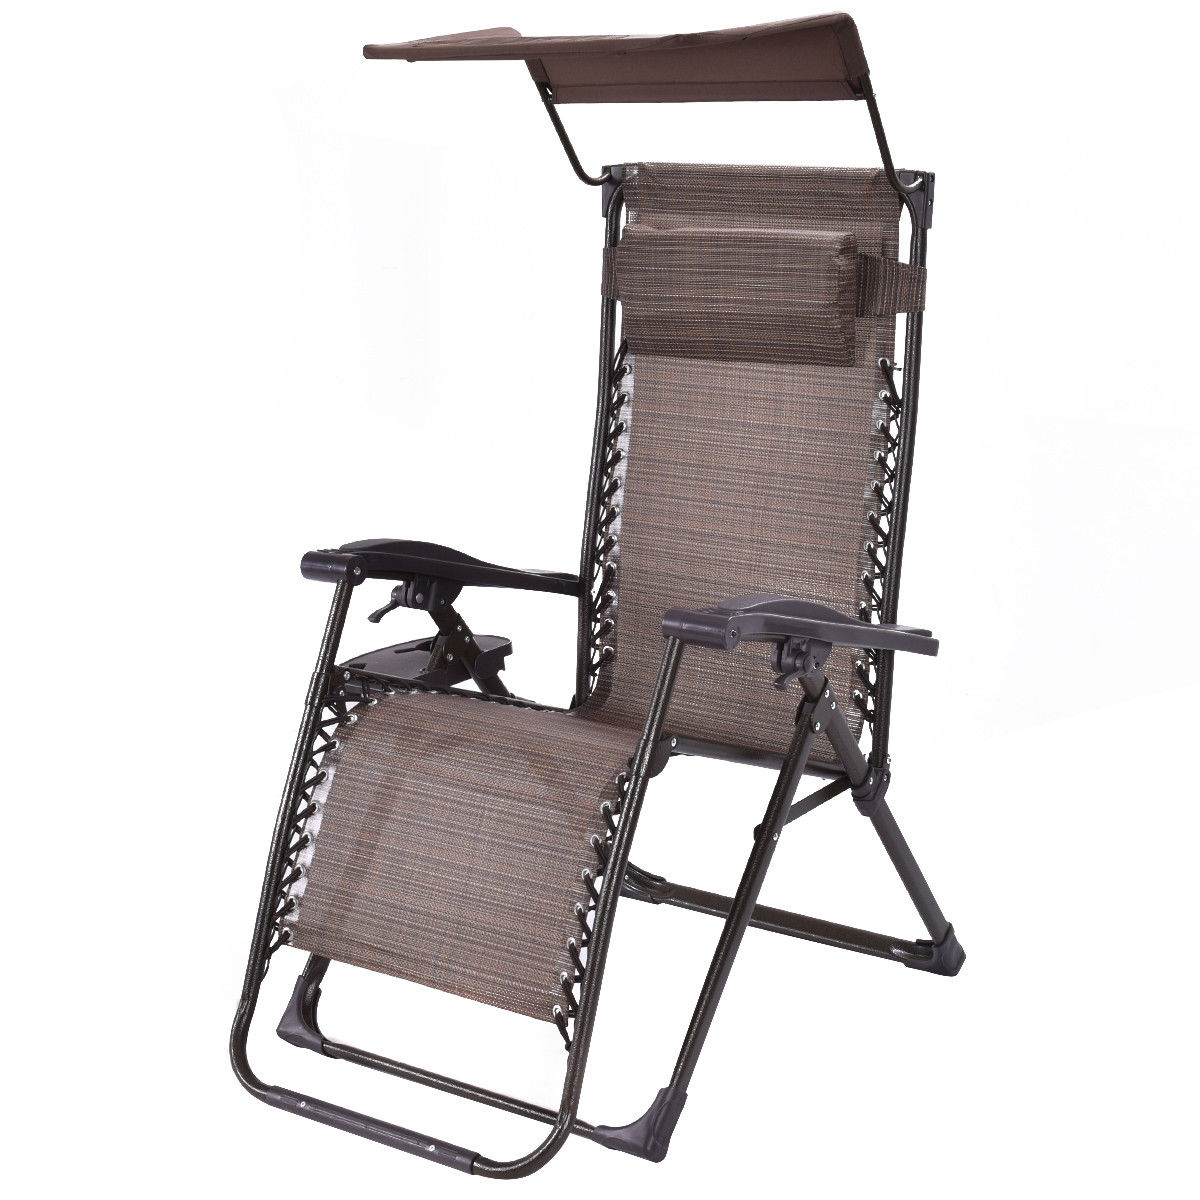 Gymax Zero Gravity Chair Lounge Foldable with Sunshade+Tray Patio Outdoor